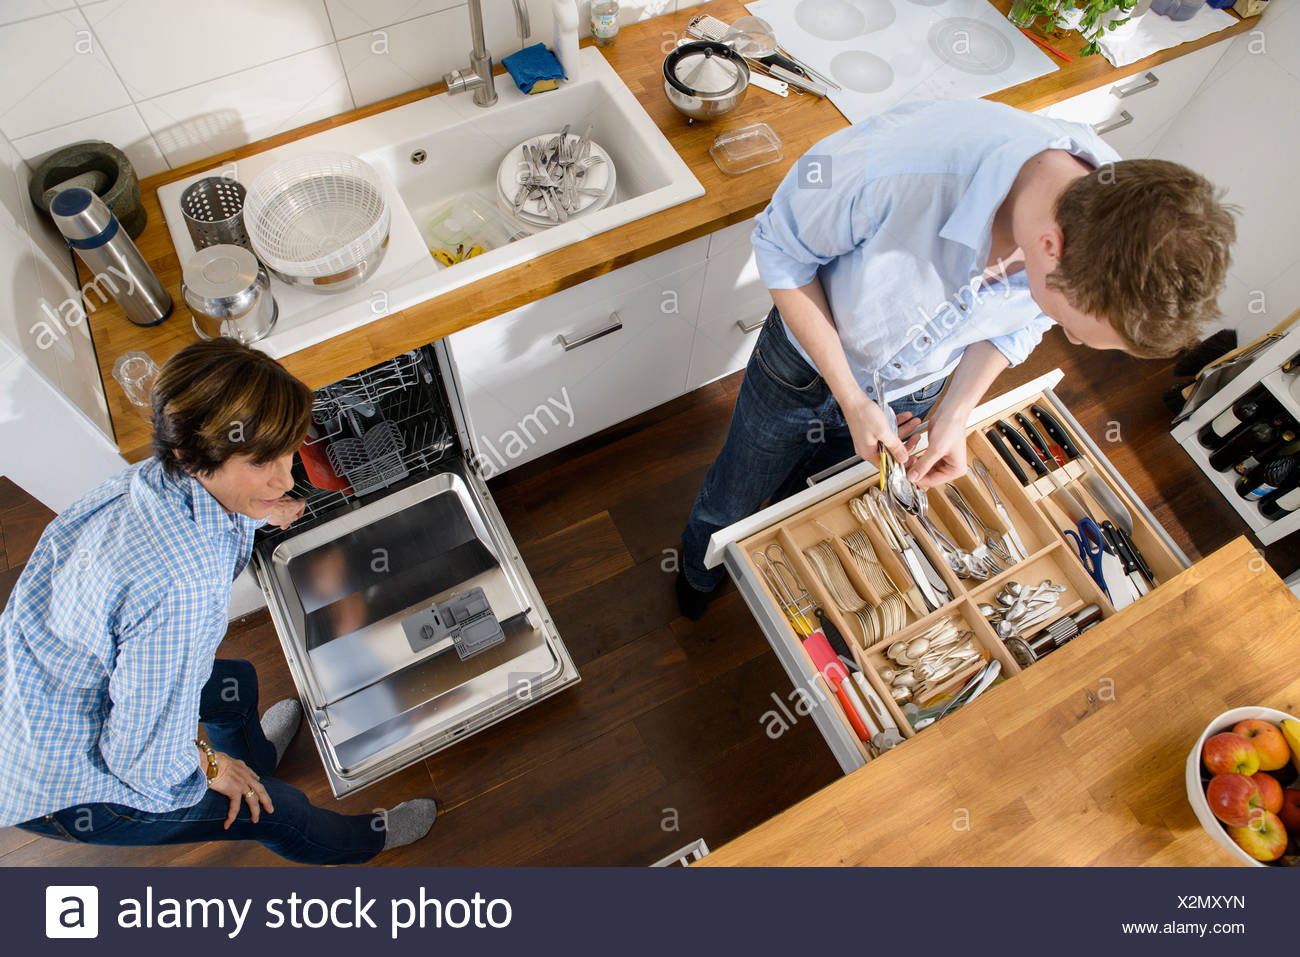 Grandmother and adult grandson tidying away cutlery from dishwasher - Stock Image